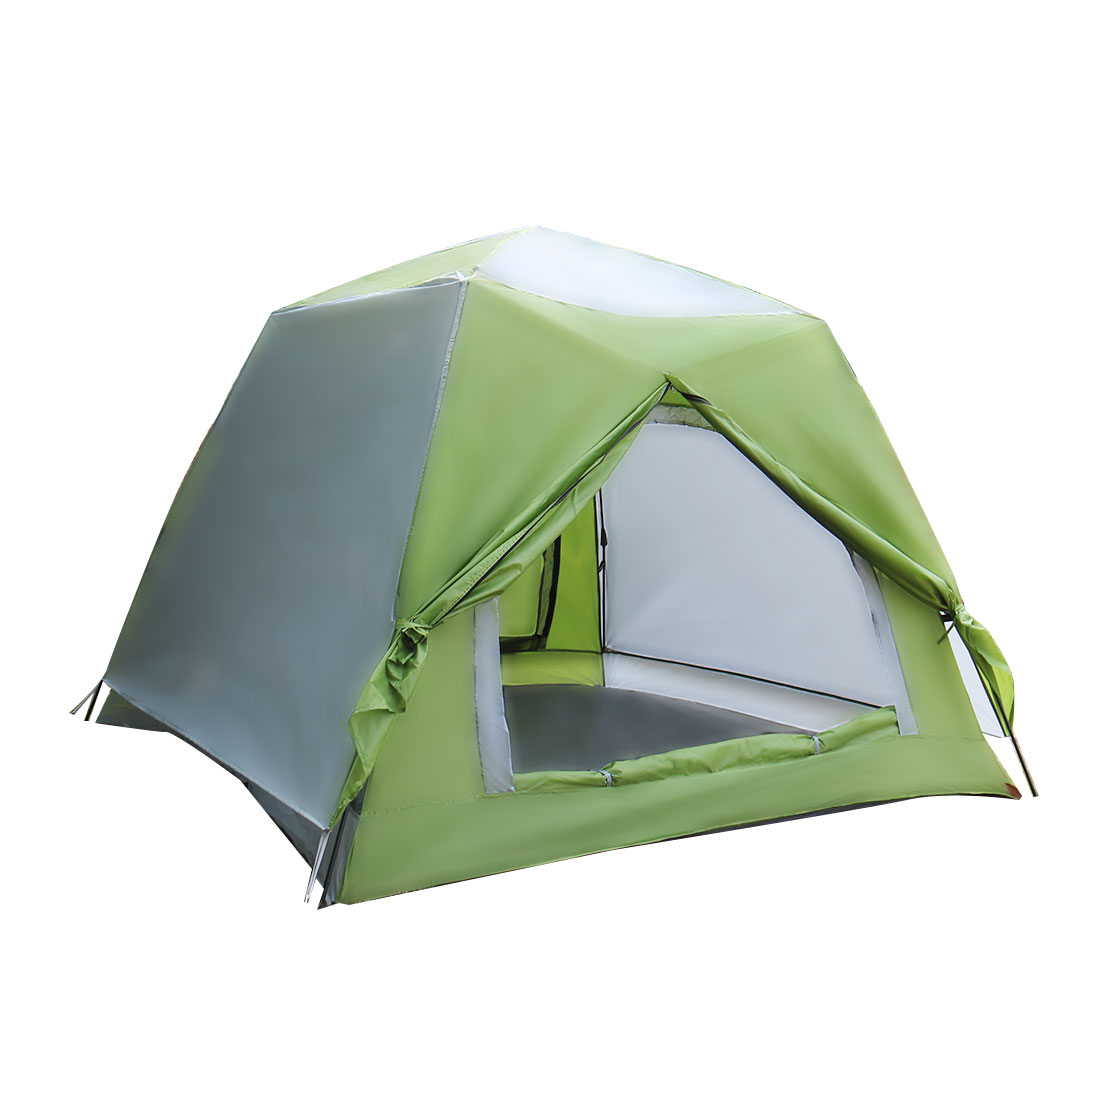 Outdoor Sun Shelter Instant Camping Tent 5-8 Person Green 220 x 220 x 170cm